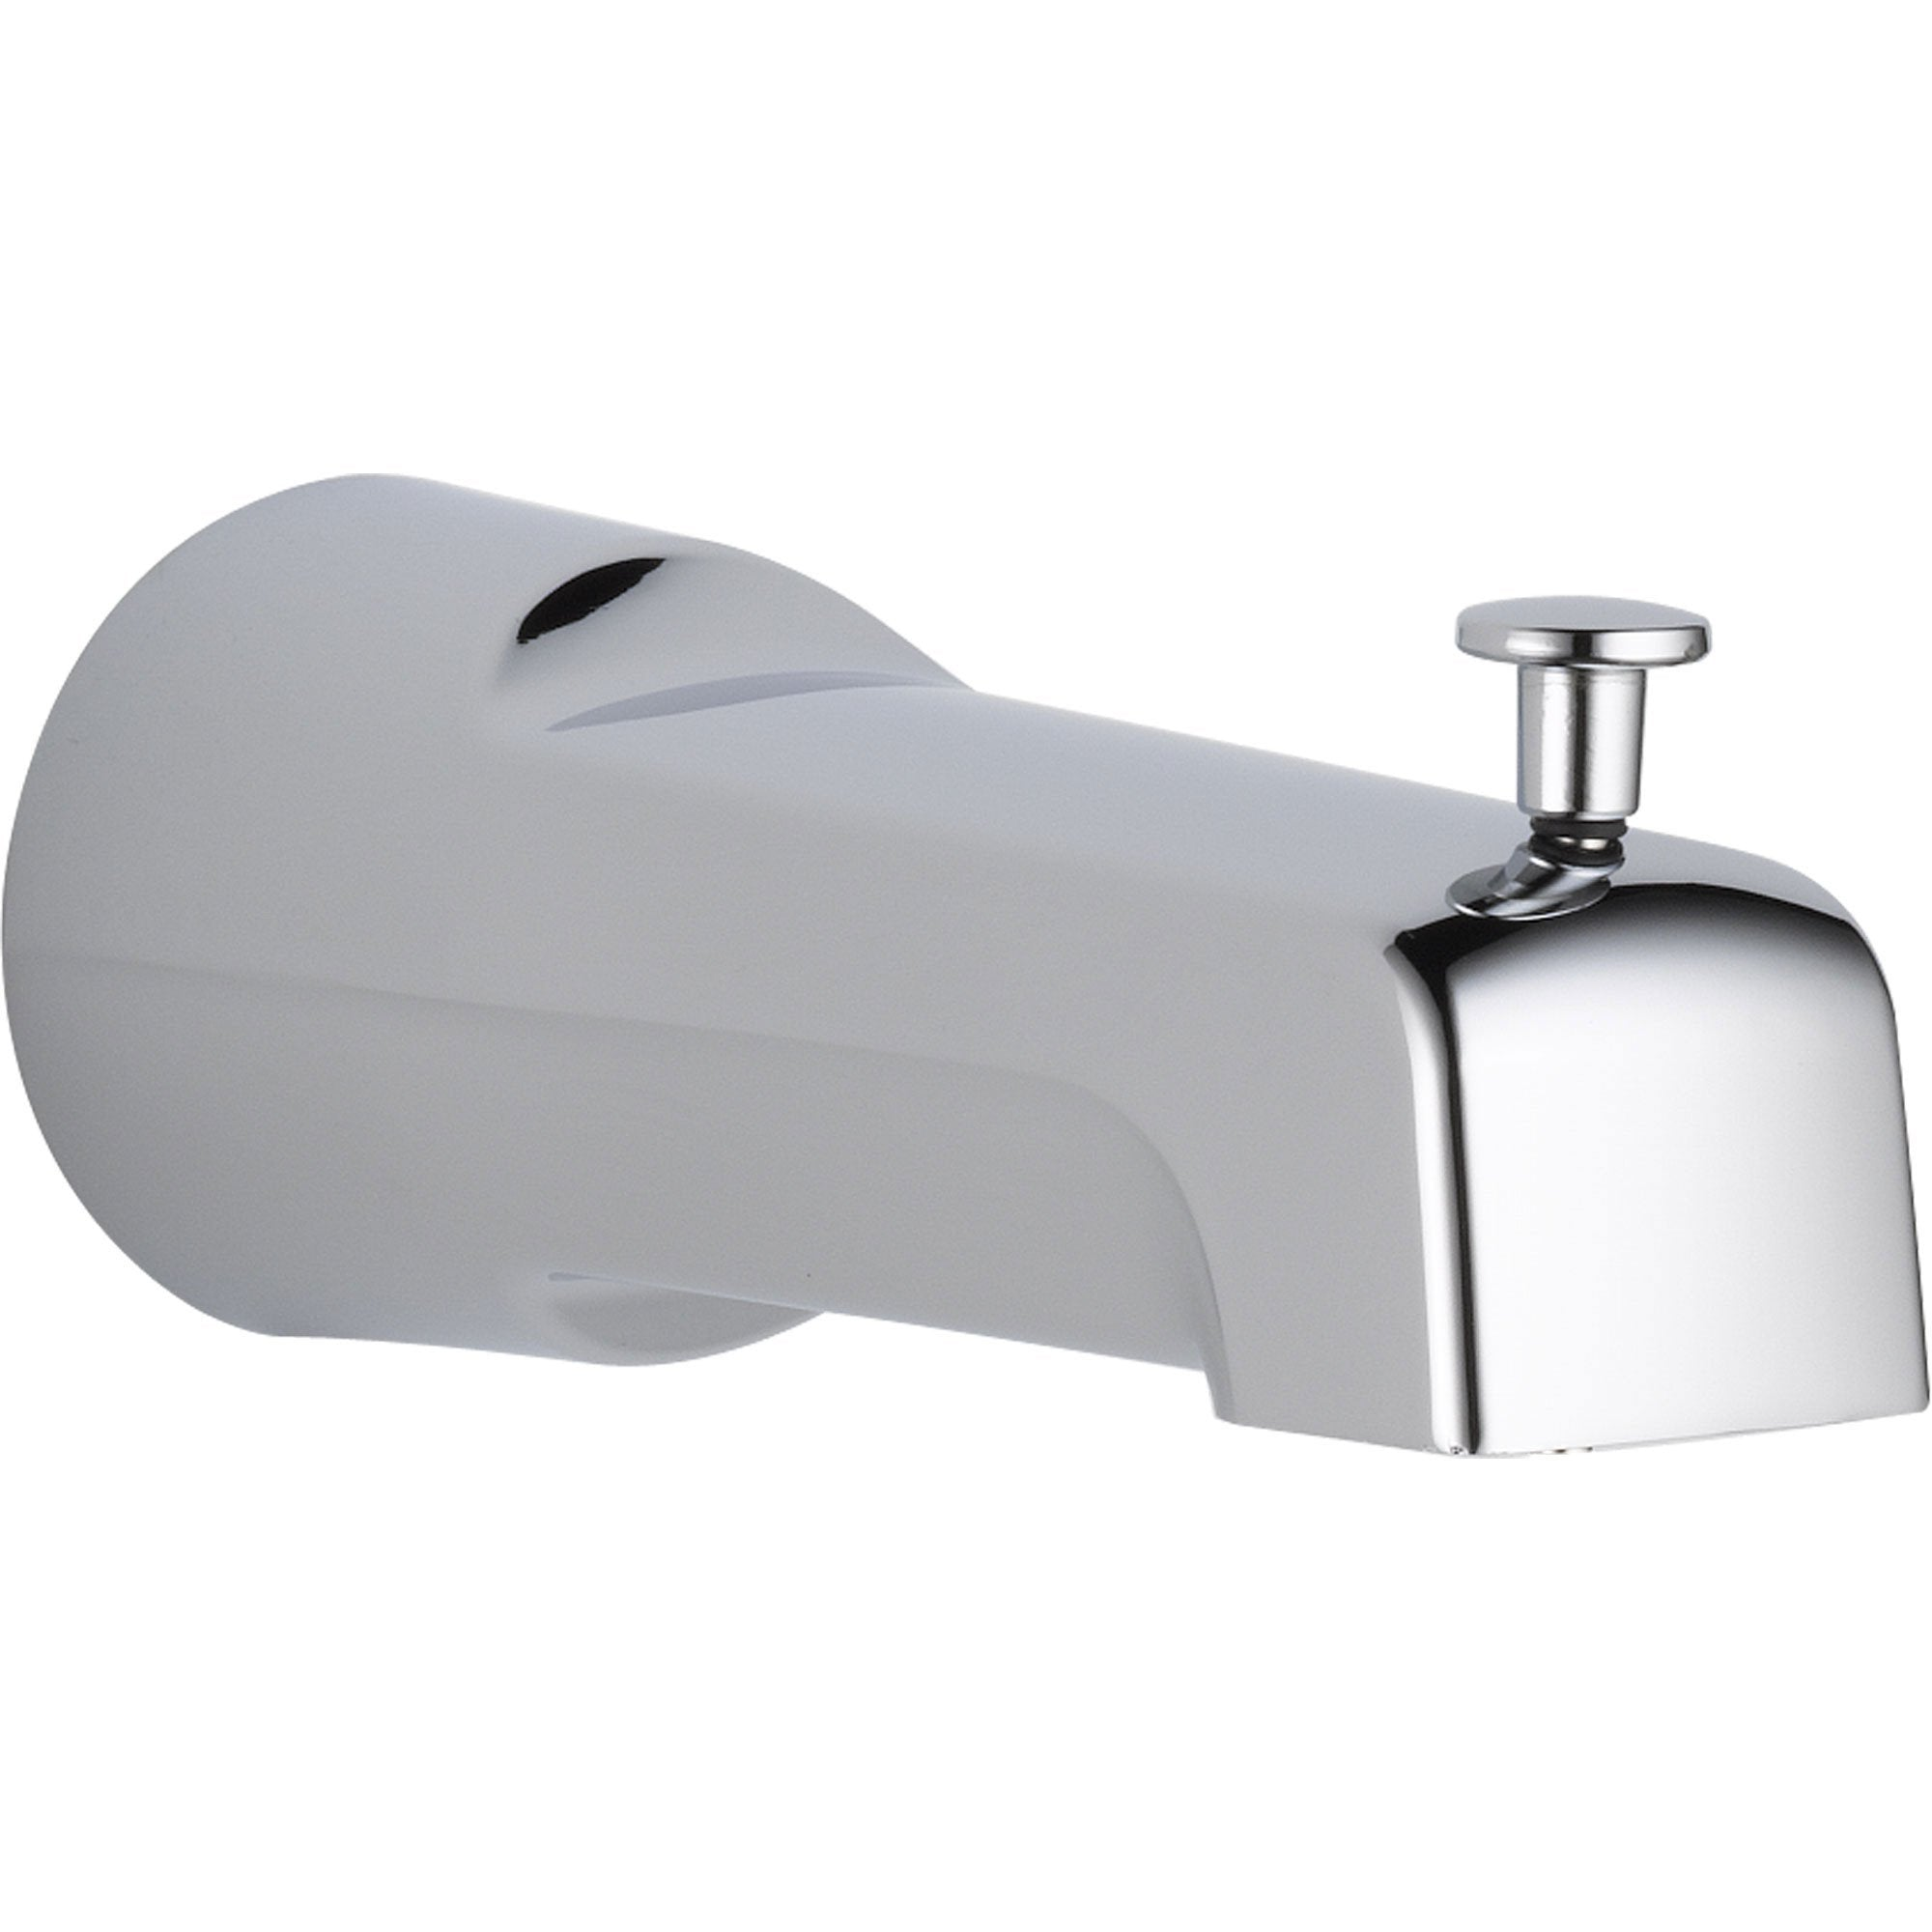 Delta Modern 6.7 In. Long Pull-up Diverter Tub Spout in Chrome 561298